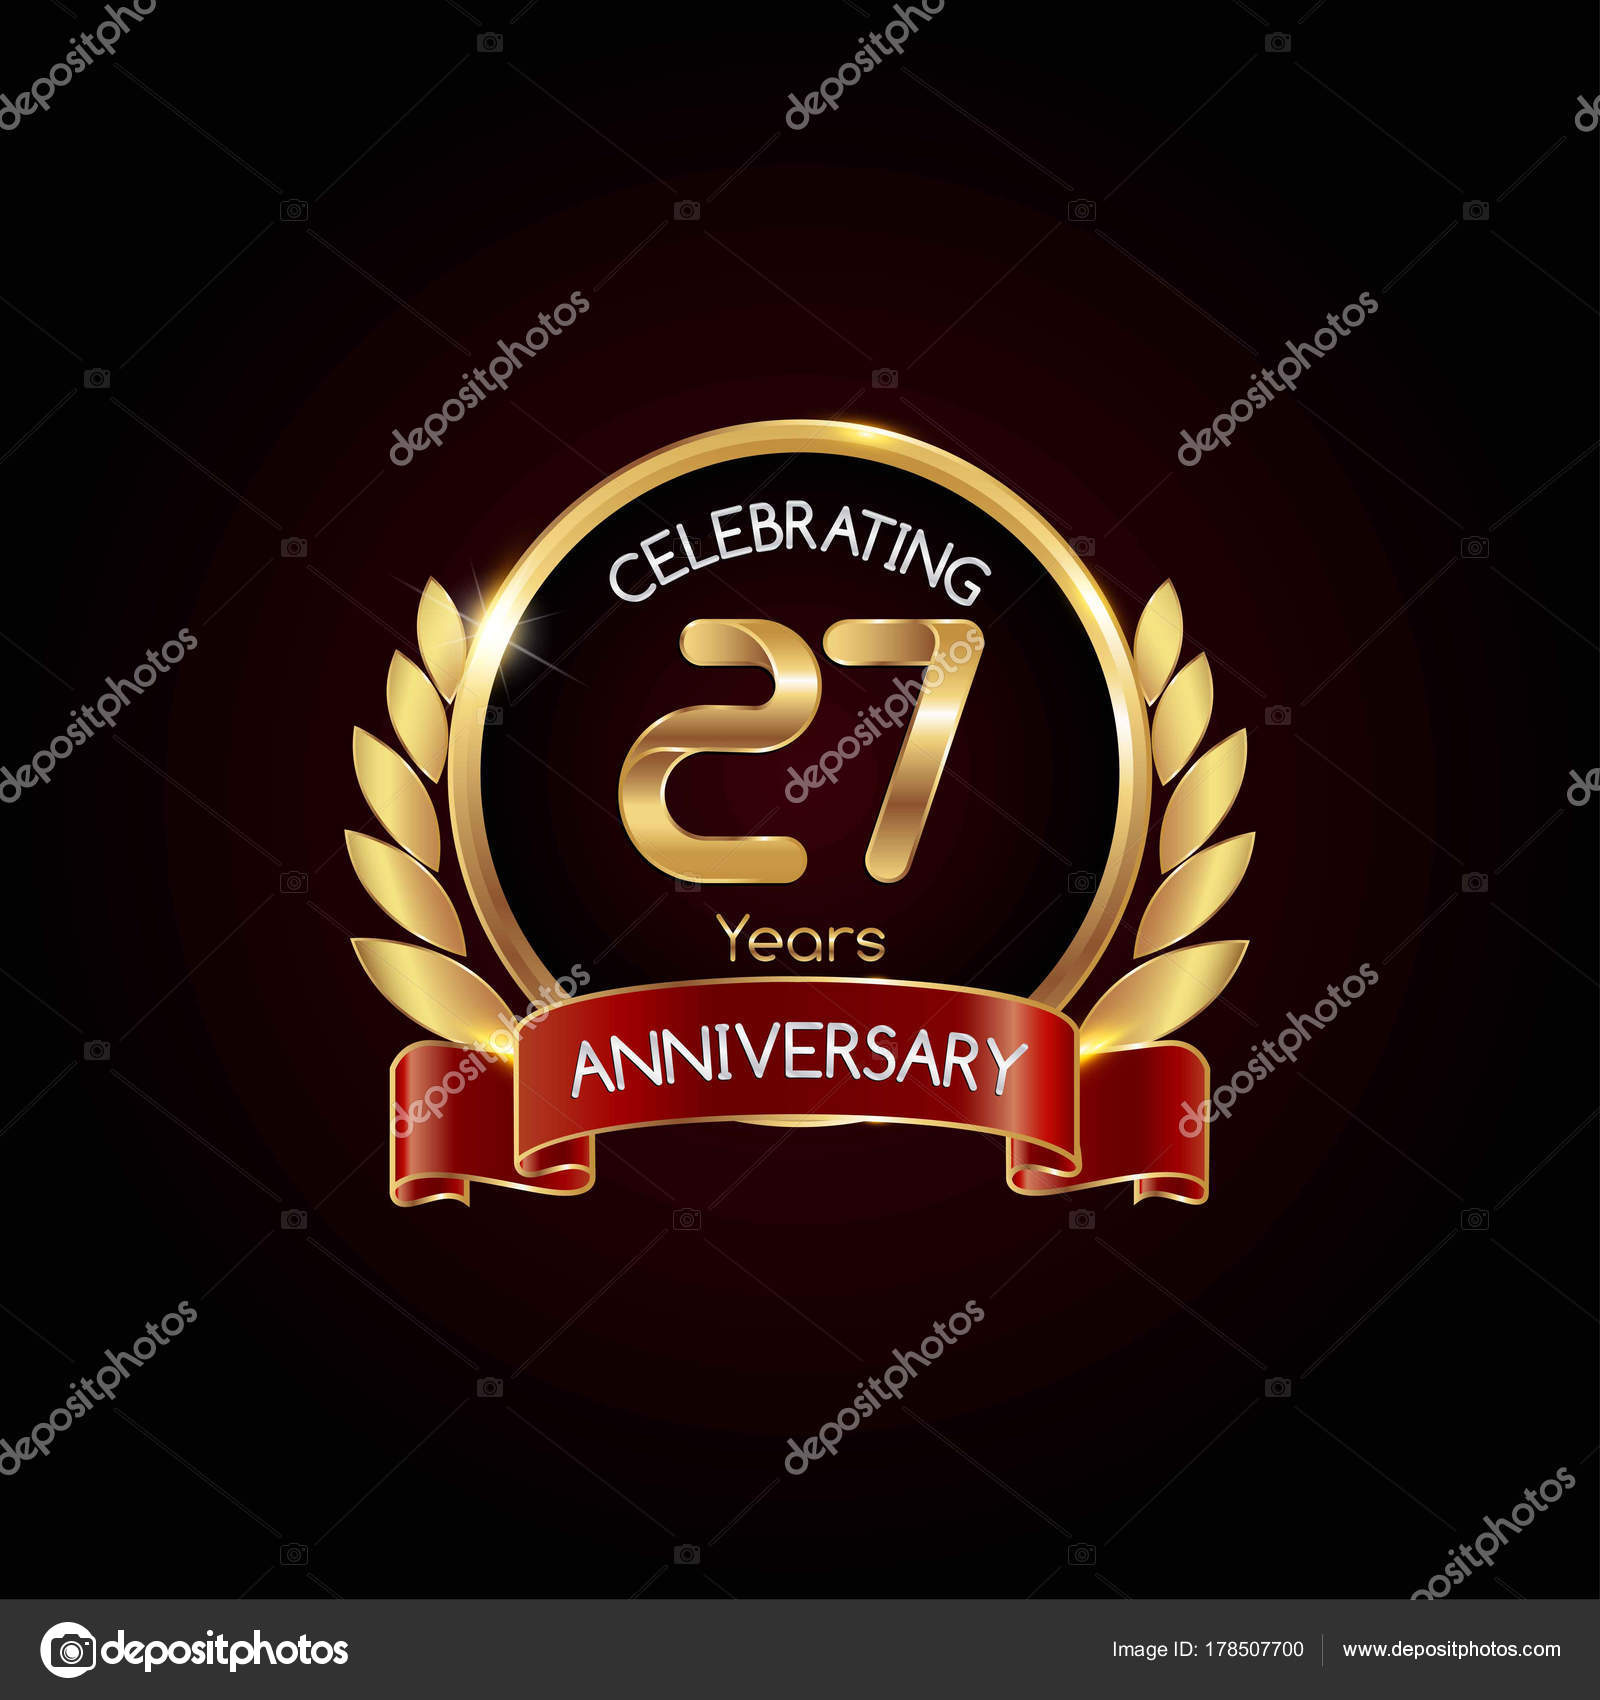 Years gold anniversary celebrating logo red ribbon vector 27 years gold anniversary celebrating logo with red ribbon vector illustration on dark background vector by seklihermantaputragmail biocorpaavc Images